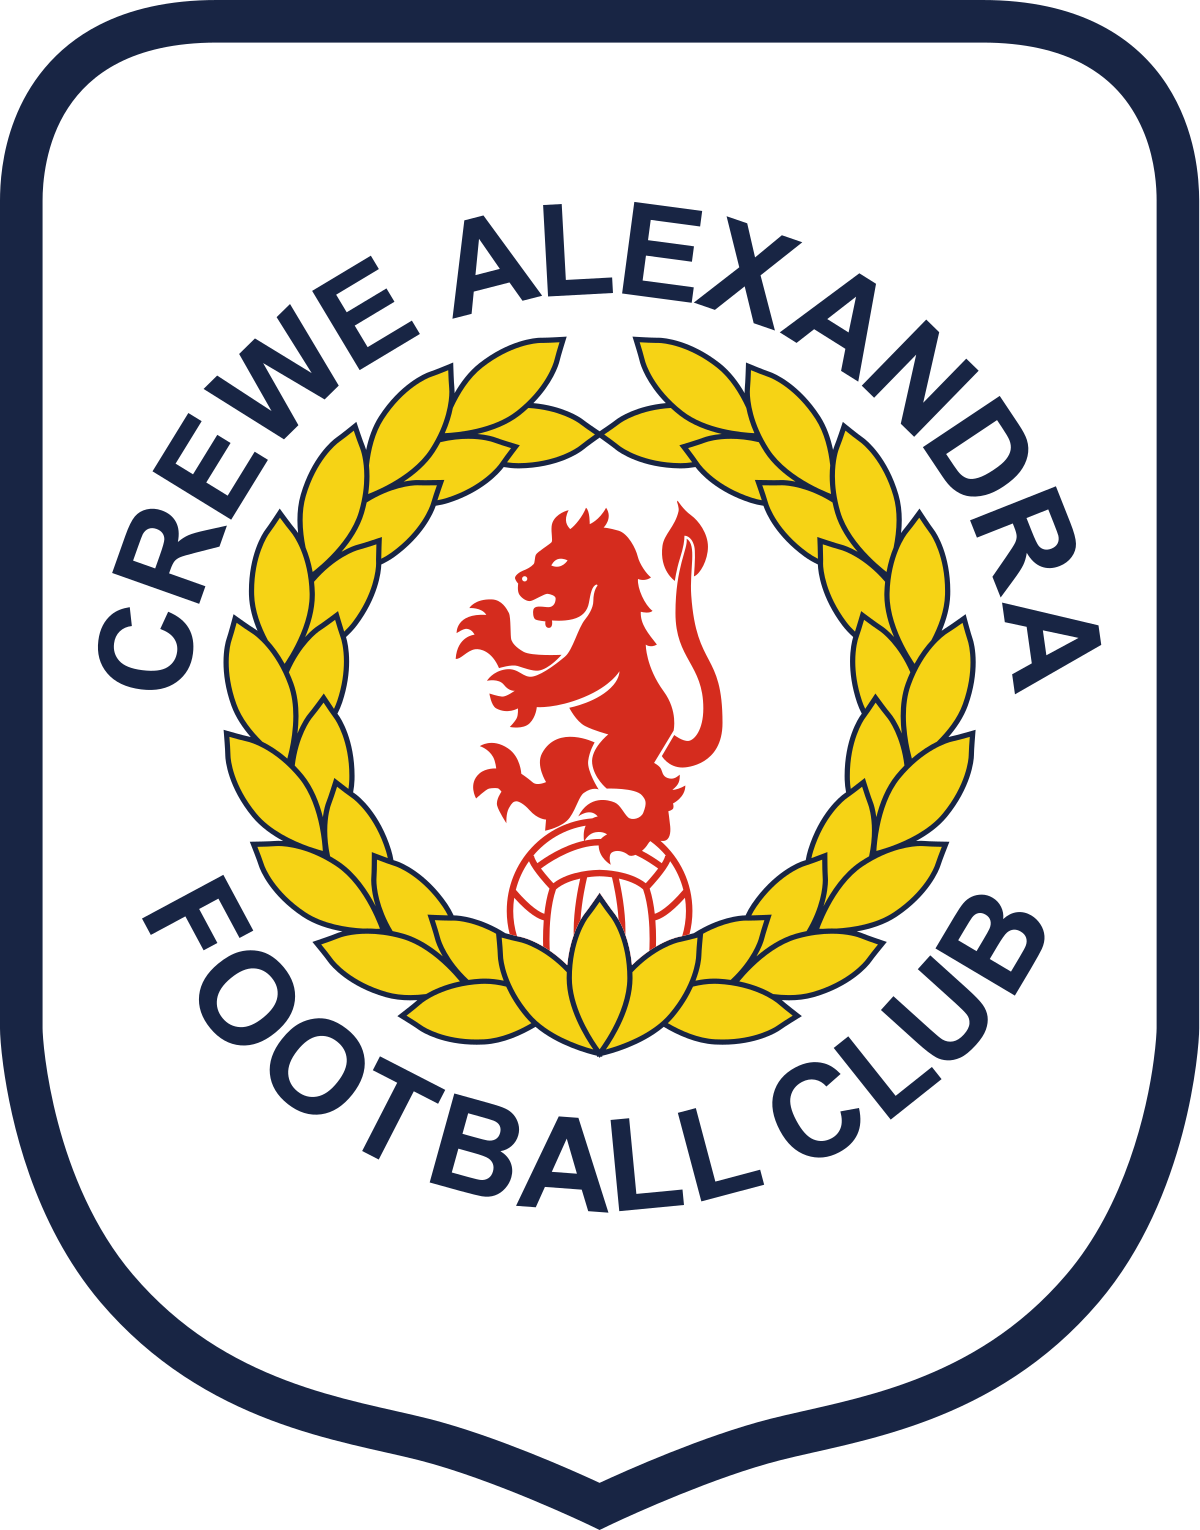 Crewe Alexandra Fottball Club